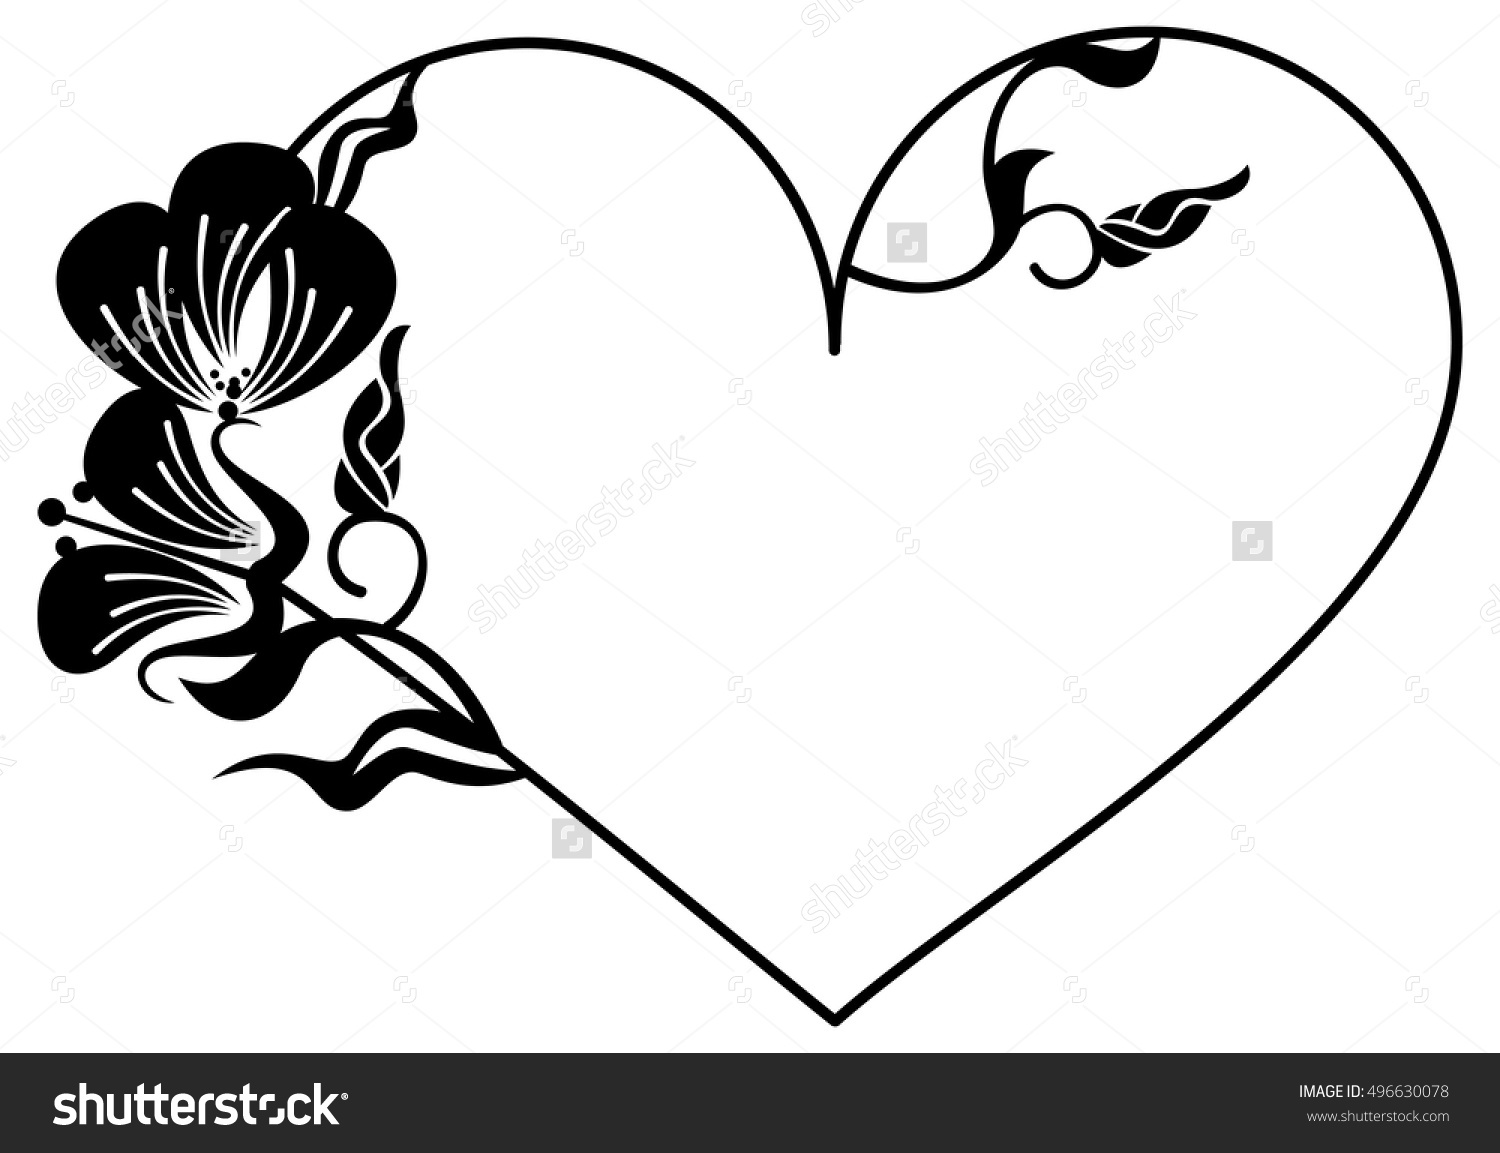 1500x1153 Heart Shaped Leaves Silhouette Clipart Collection